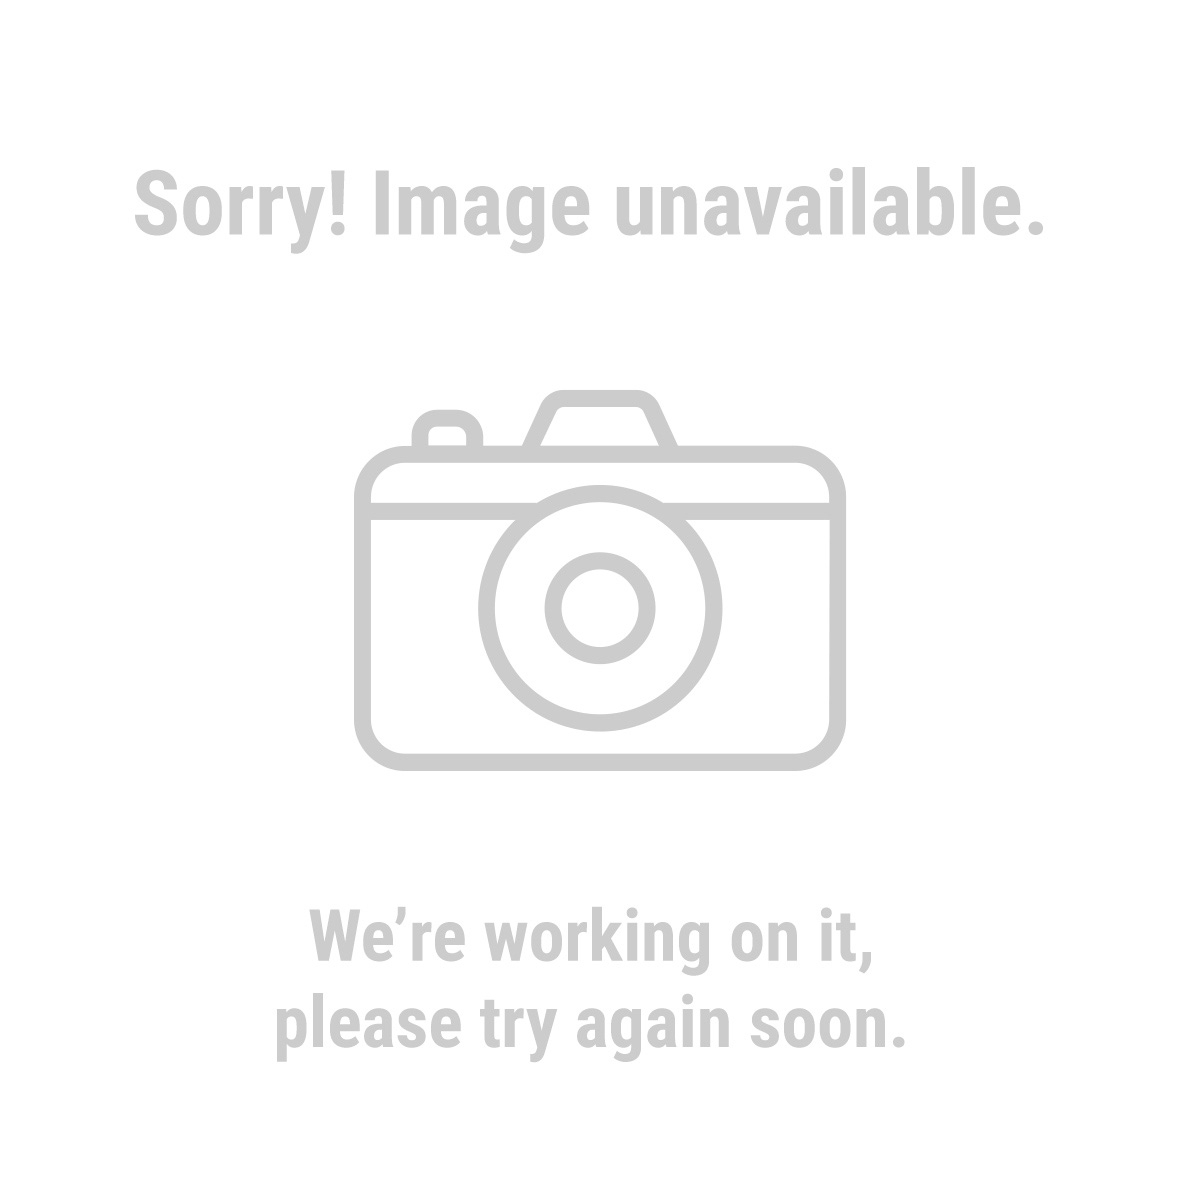 "Pittsburgh 67888 7 Piece 3/8"" Metric Long Ball Head Hex Socket Set"